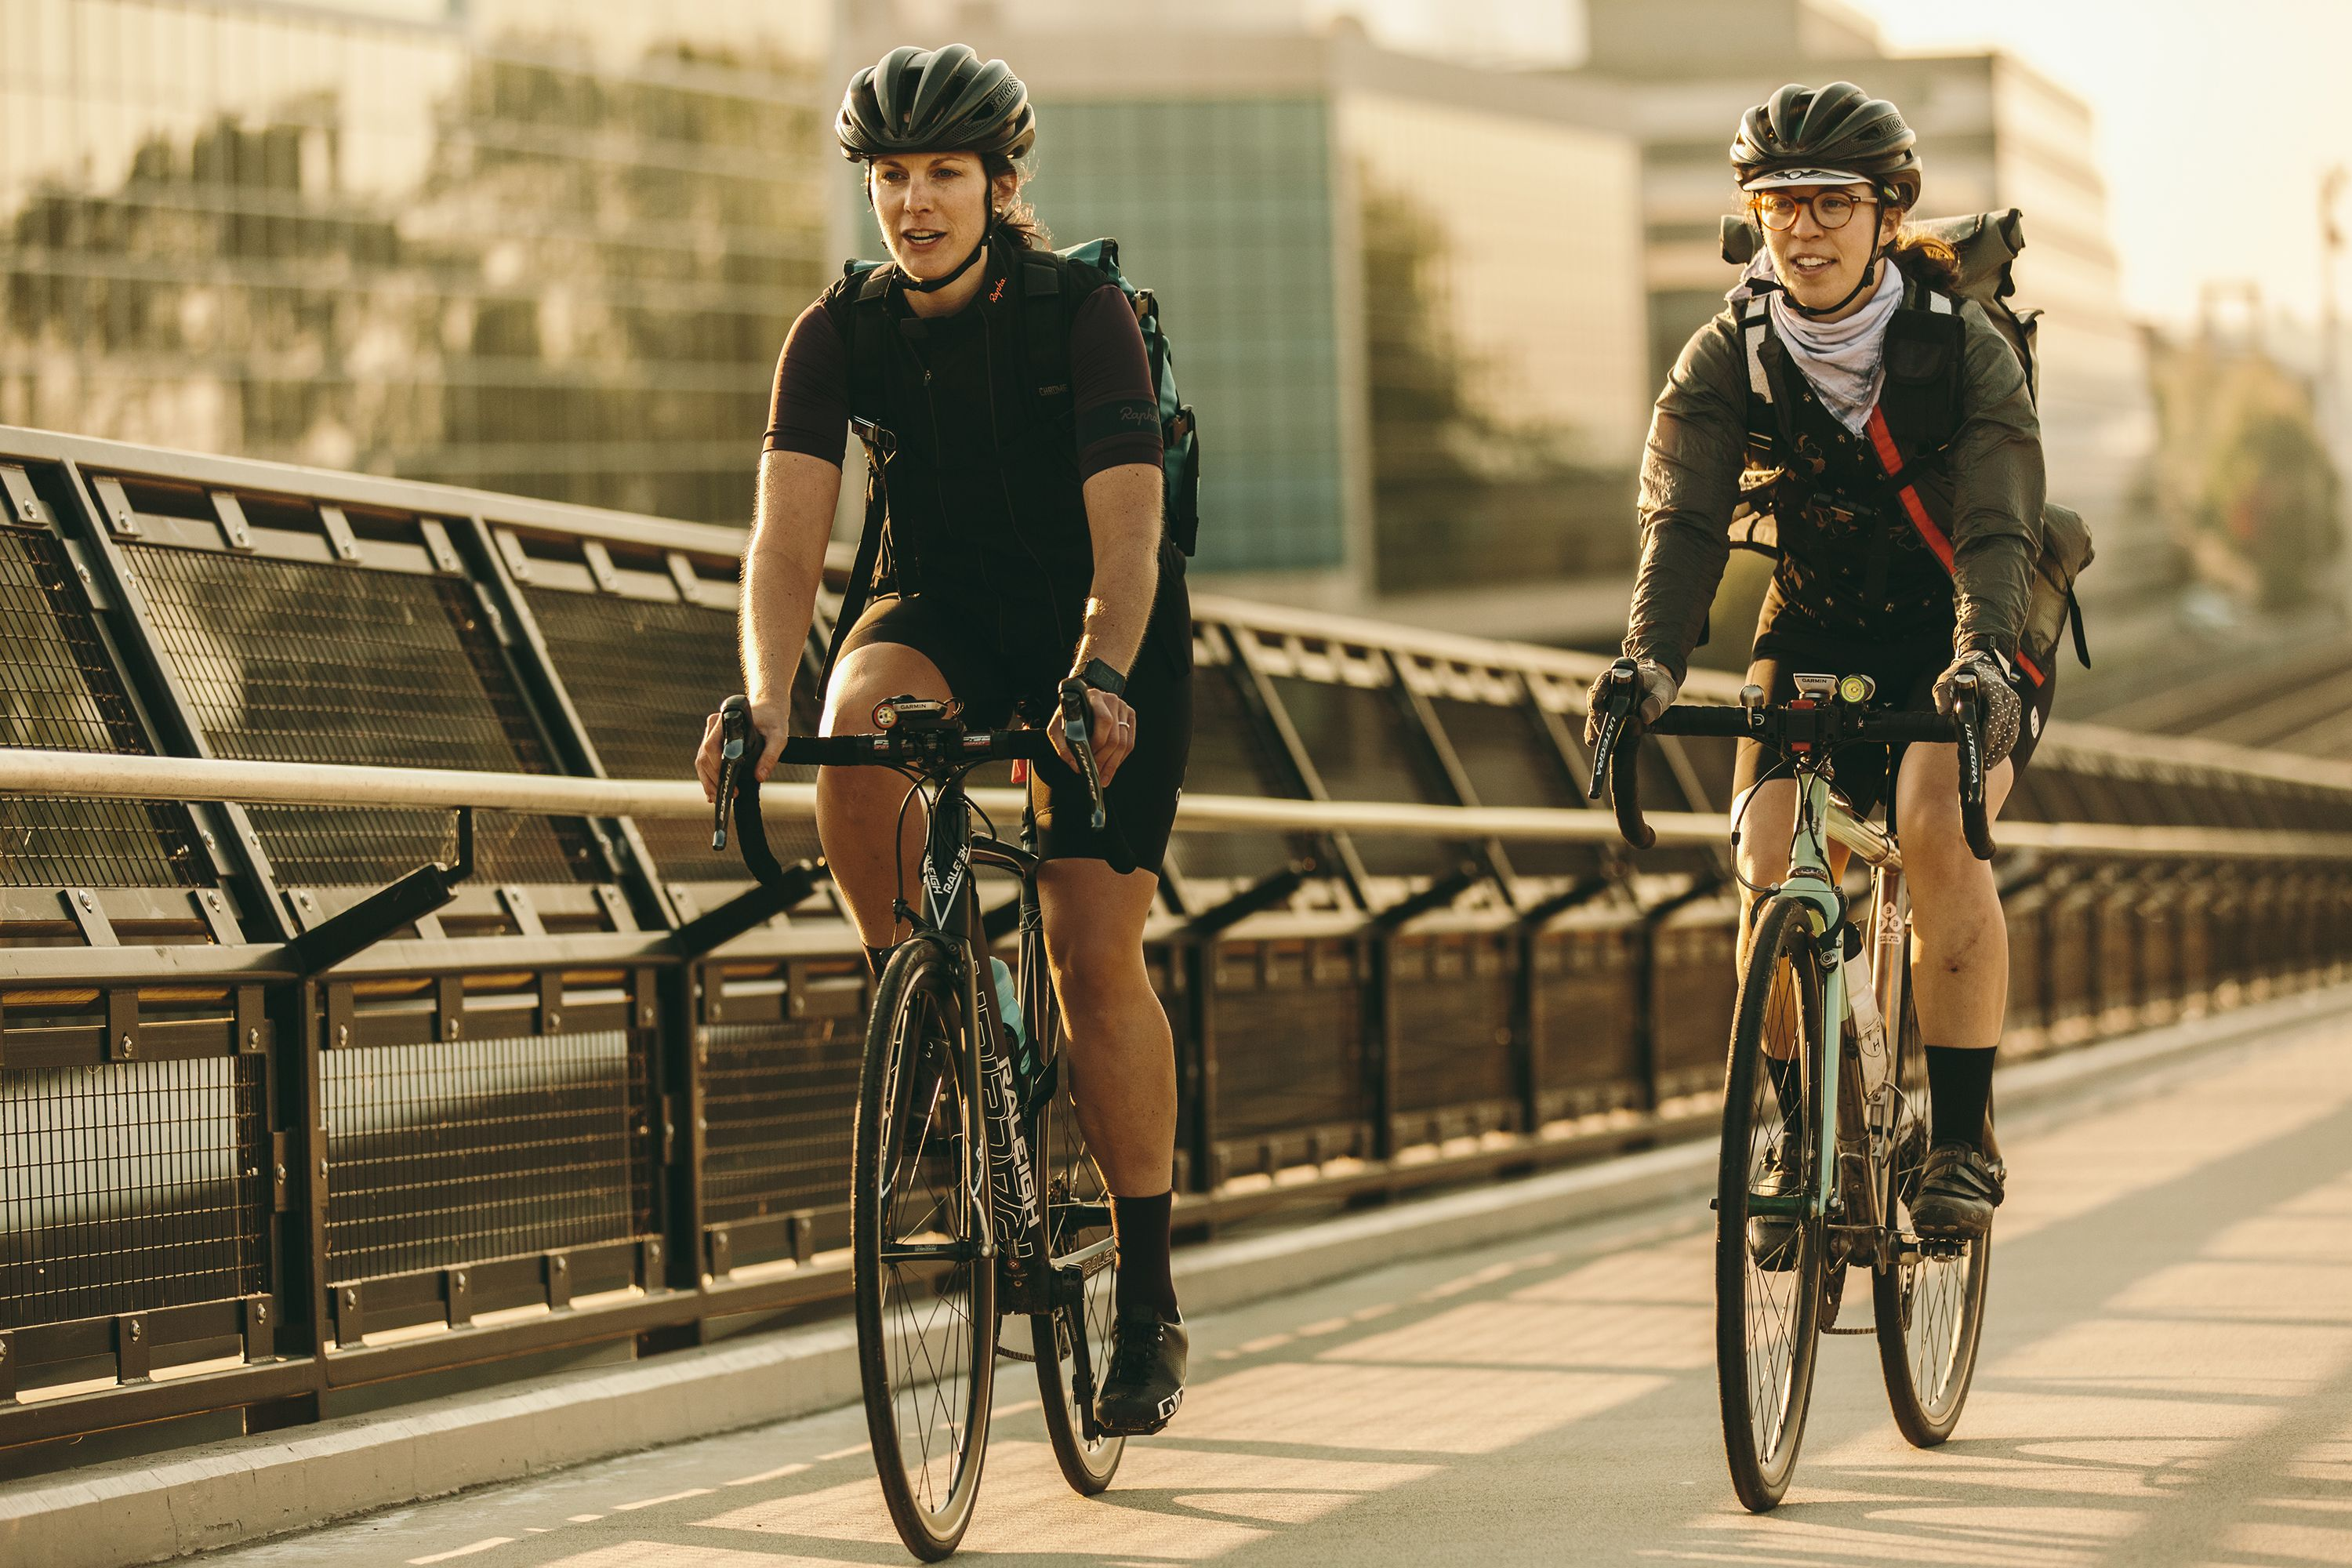 Bicycle use helps reduce air pollution essay